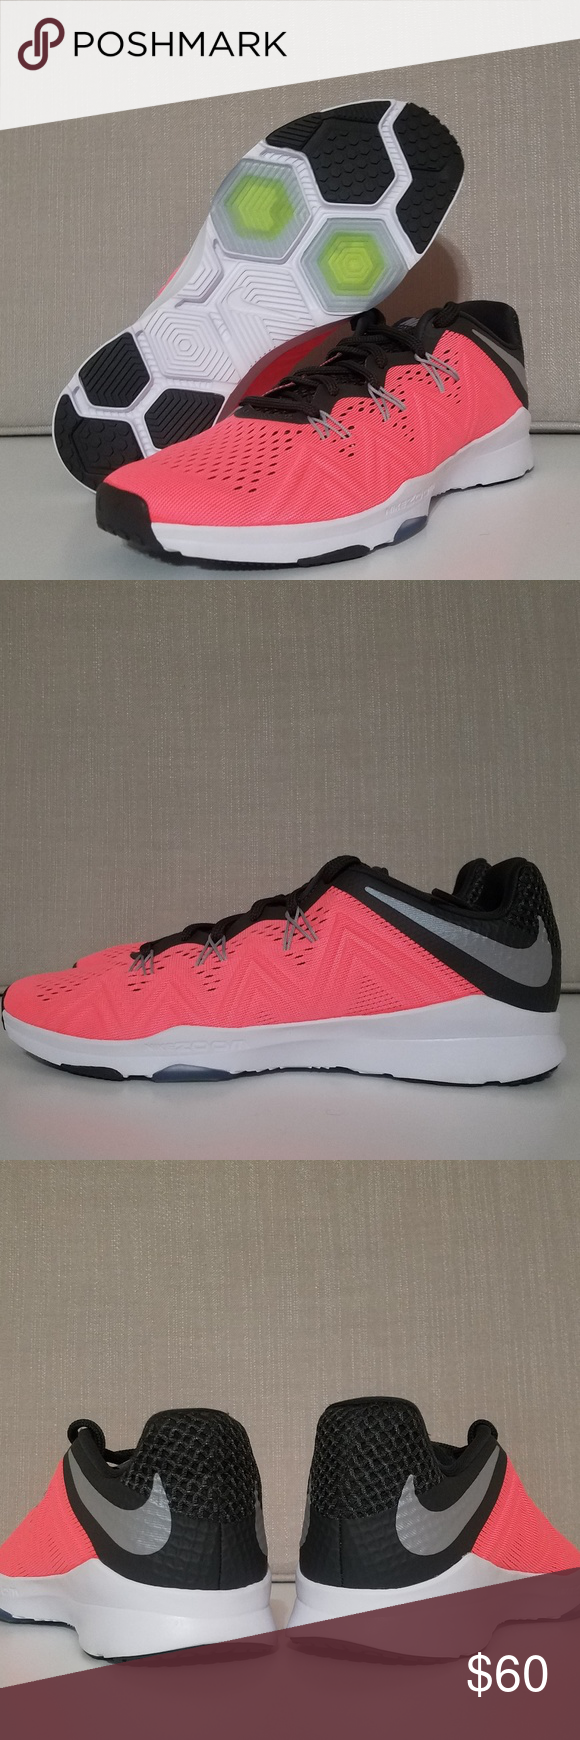 32fb10fed824 Nike Zoom Condition TR Sz8.5 Nike Zoom Size 8.5 Color  Lava glow ...